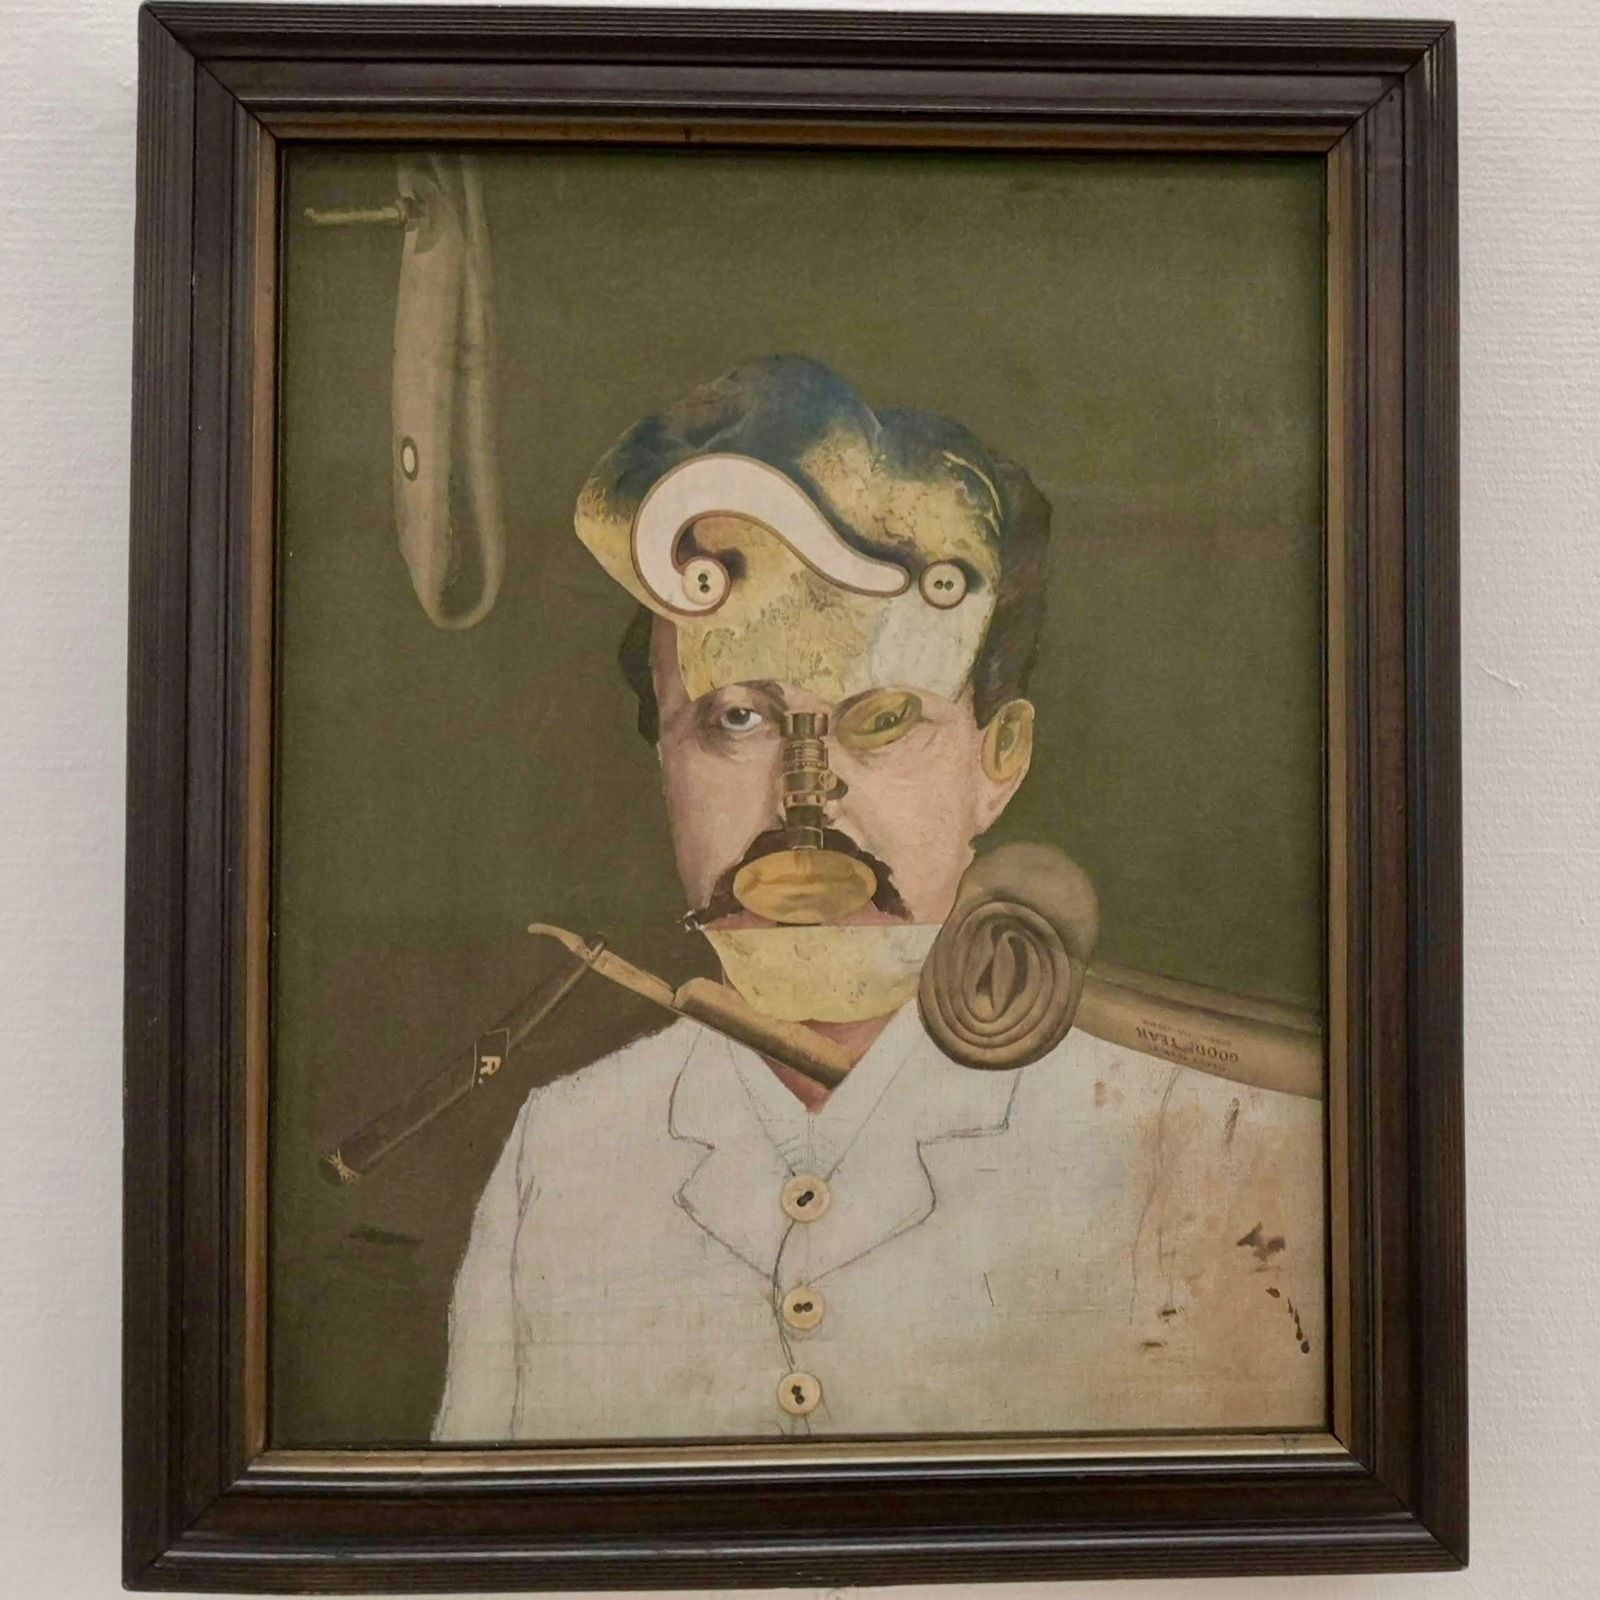 George Grosz (1893-1959), Remember Uncle August, the Unhappy Inventor, 1919, Huile, crayon et collages sur toile